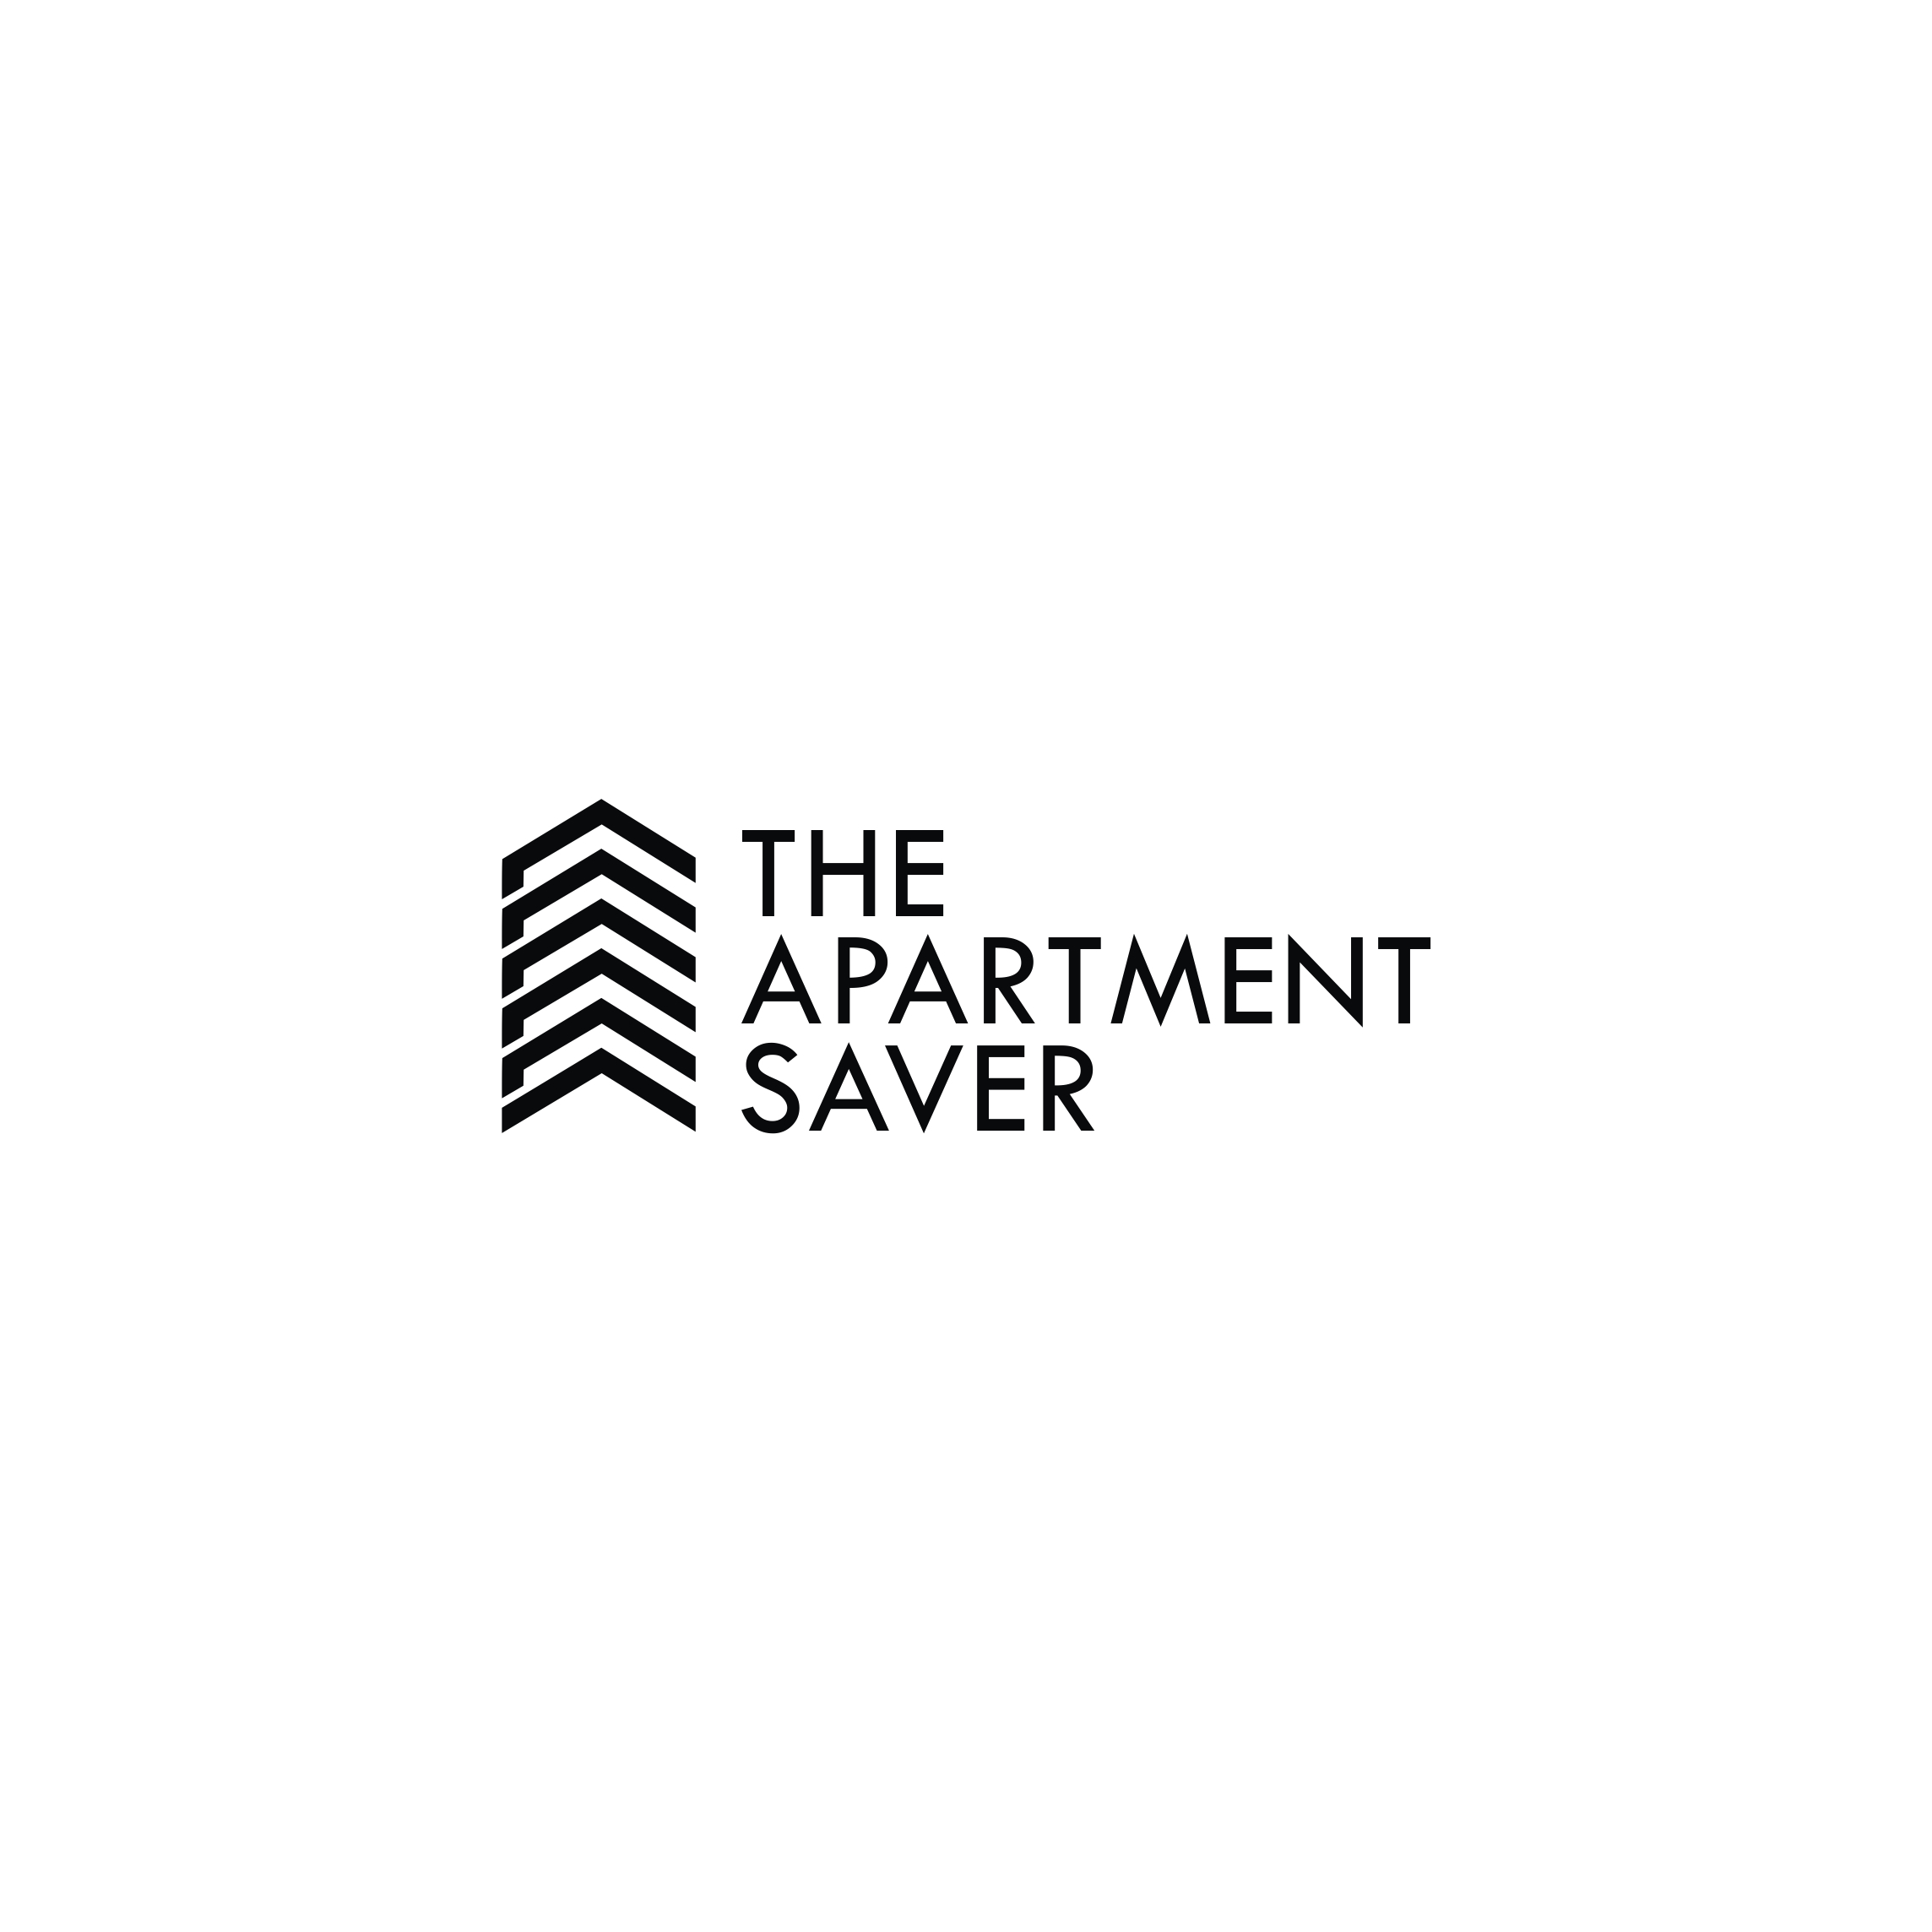 The Apartment Saver image 1